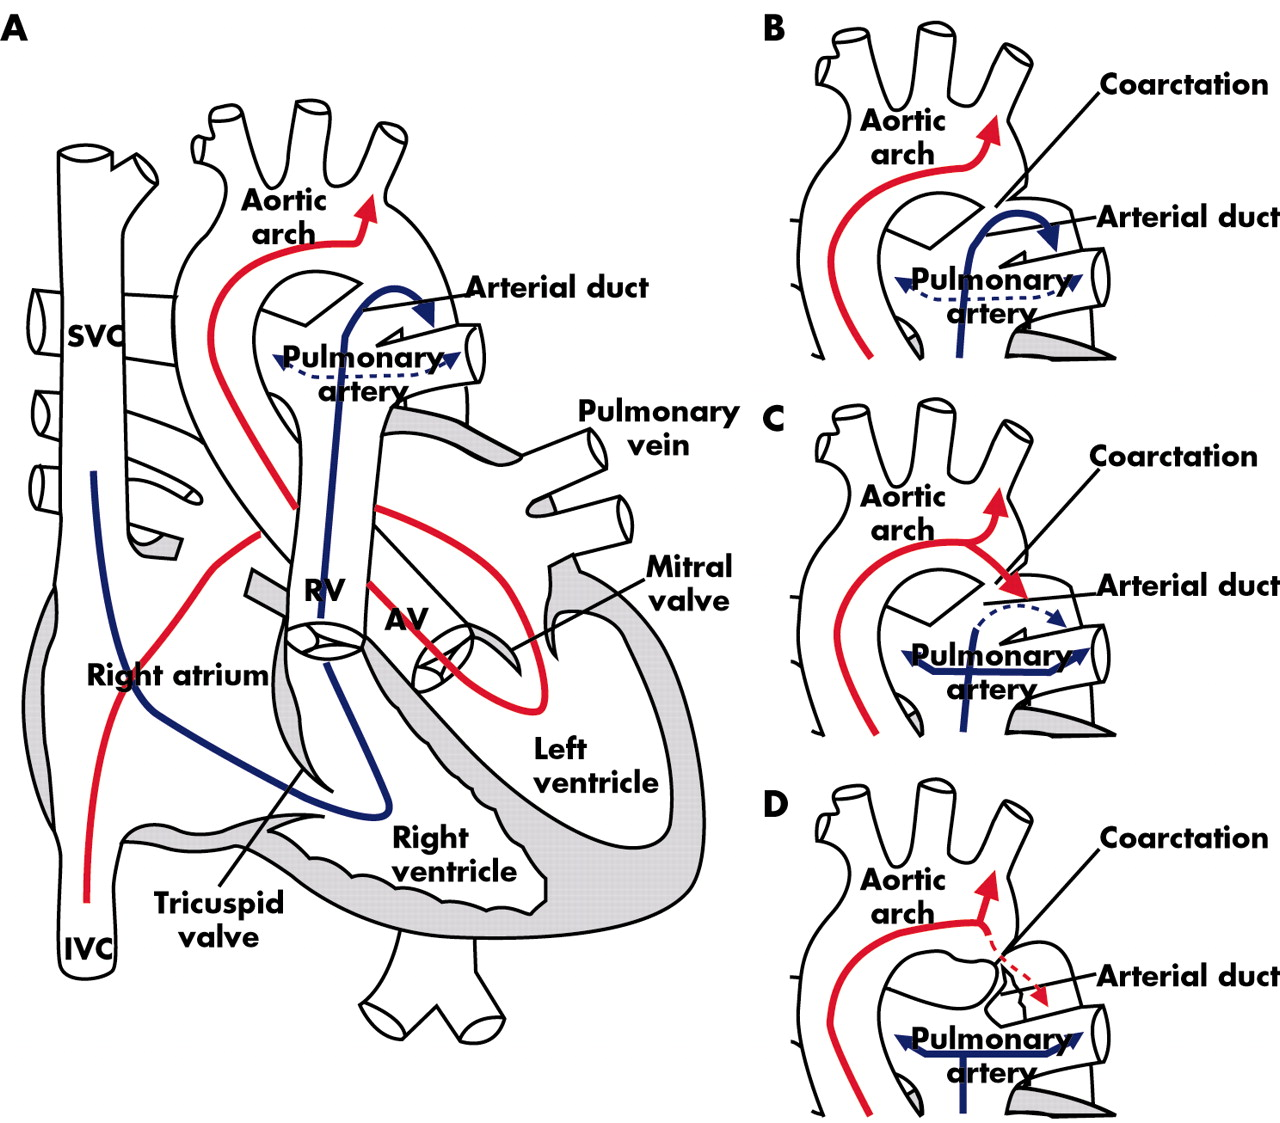 Coarctation of the aorta from fetus to adult curable